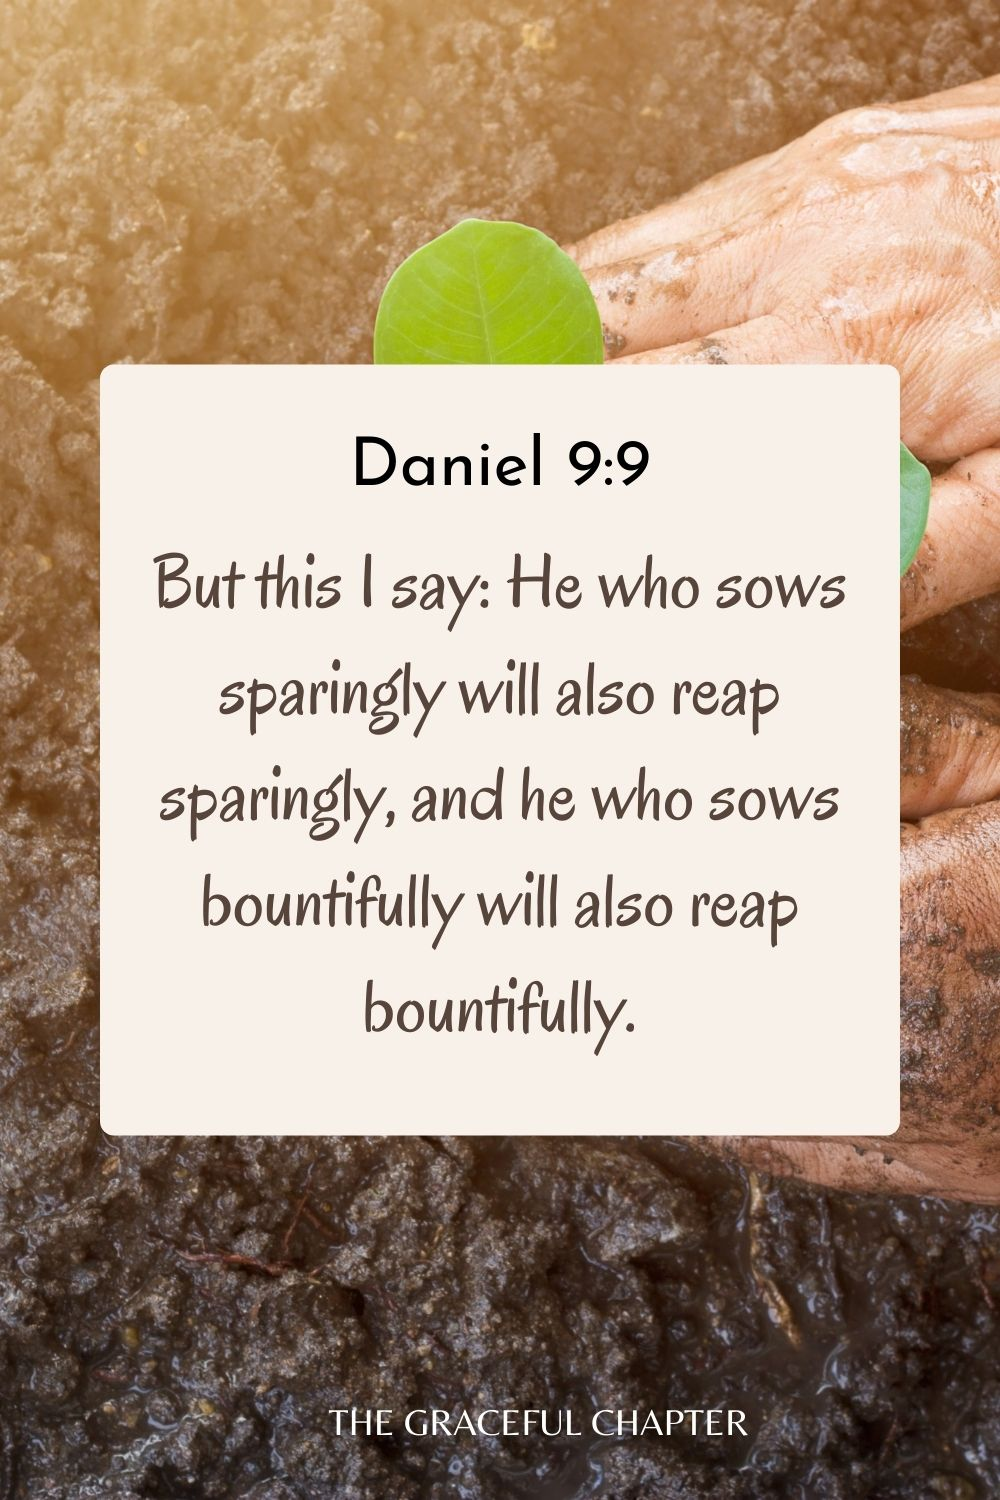 But this I say: He who sows sparingly will also reap sparingly, and he who sows bountifully will also reap bountifully. 2 Corinthians 9:6